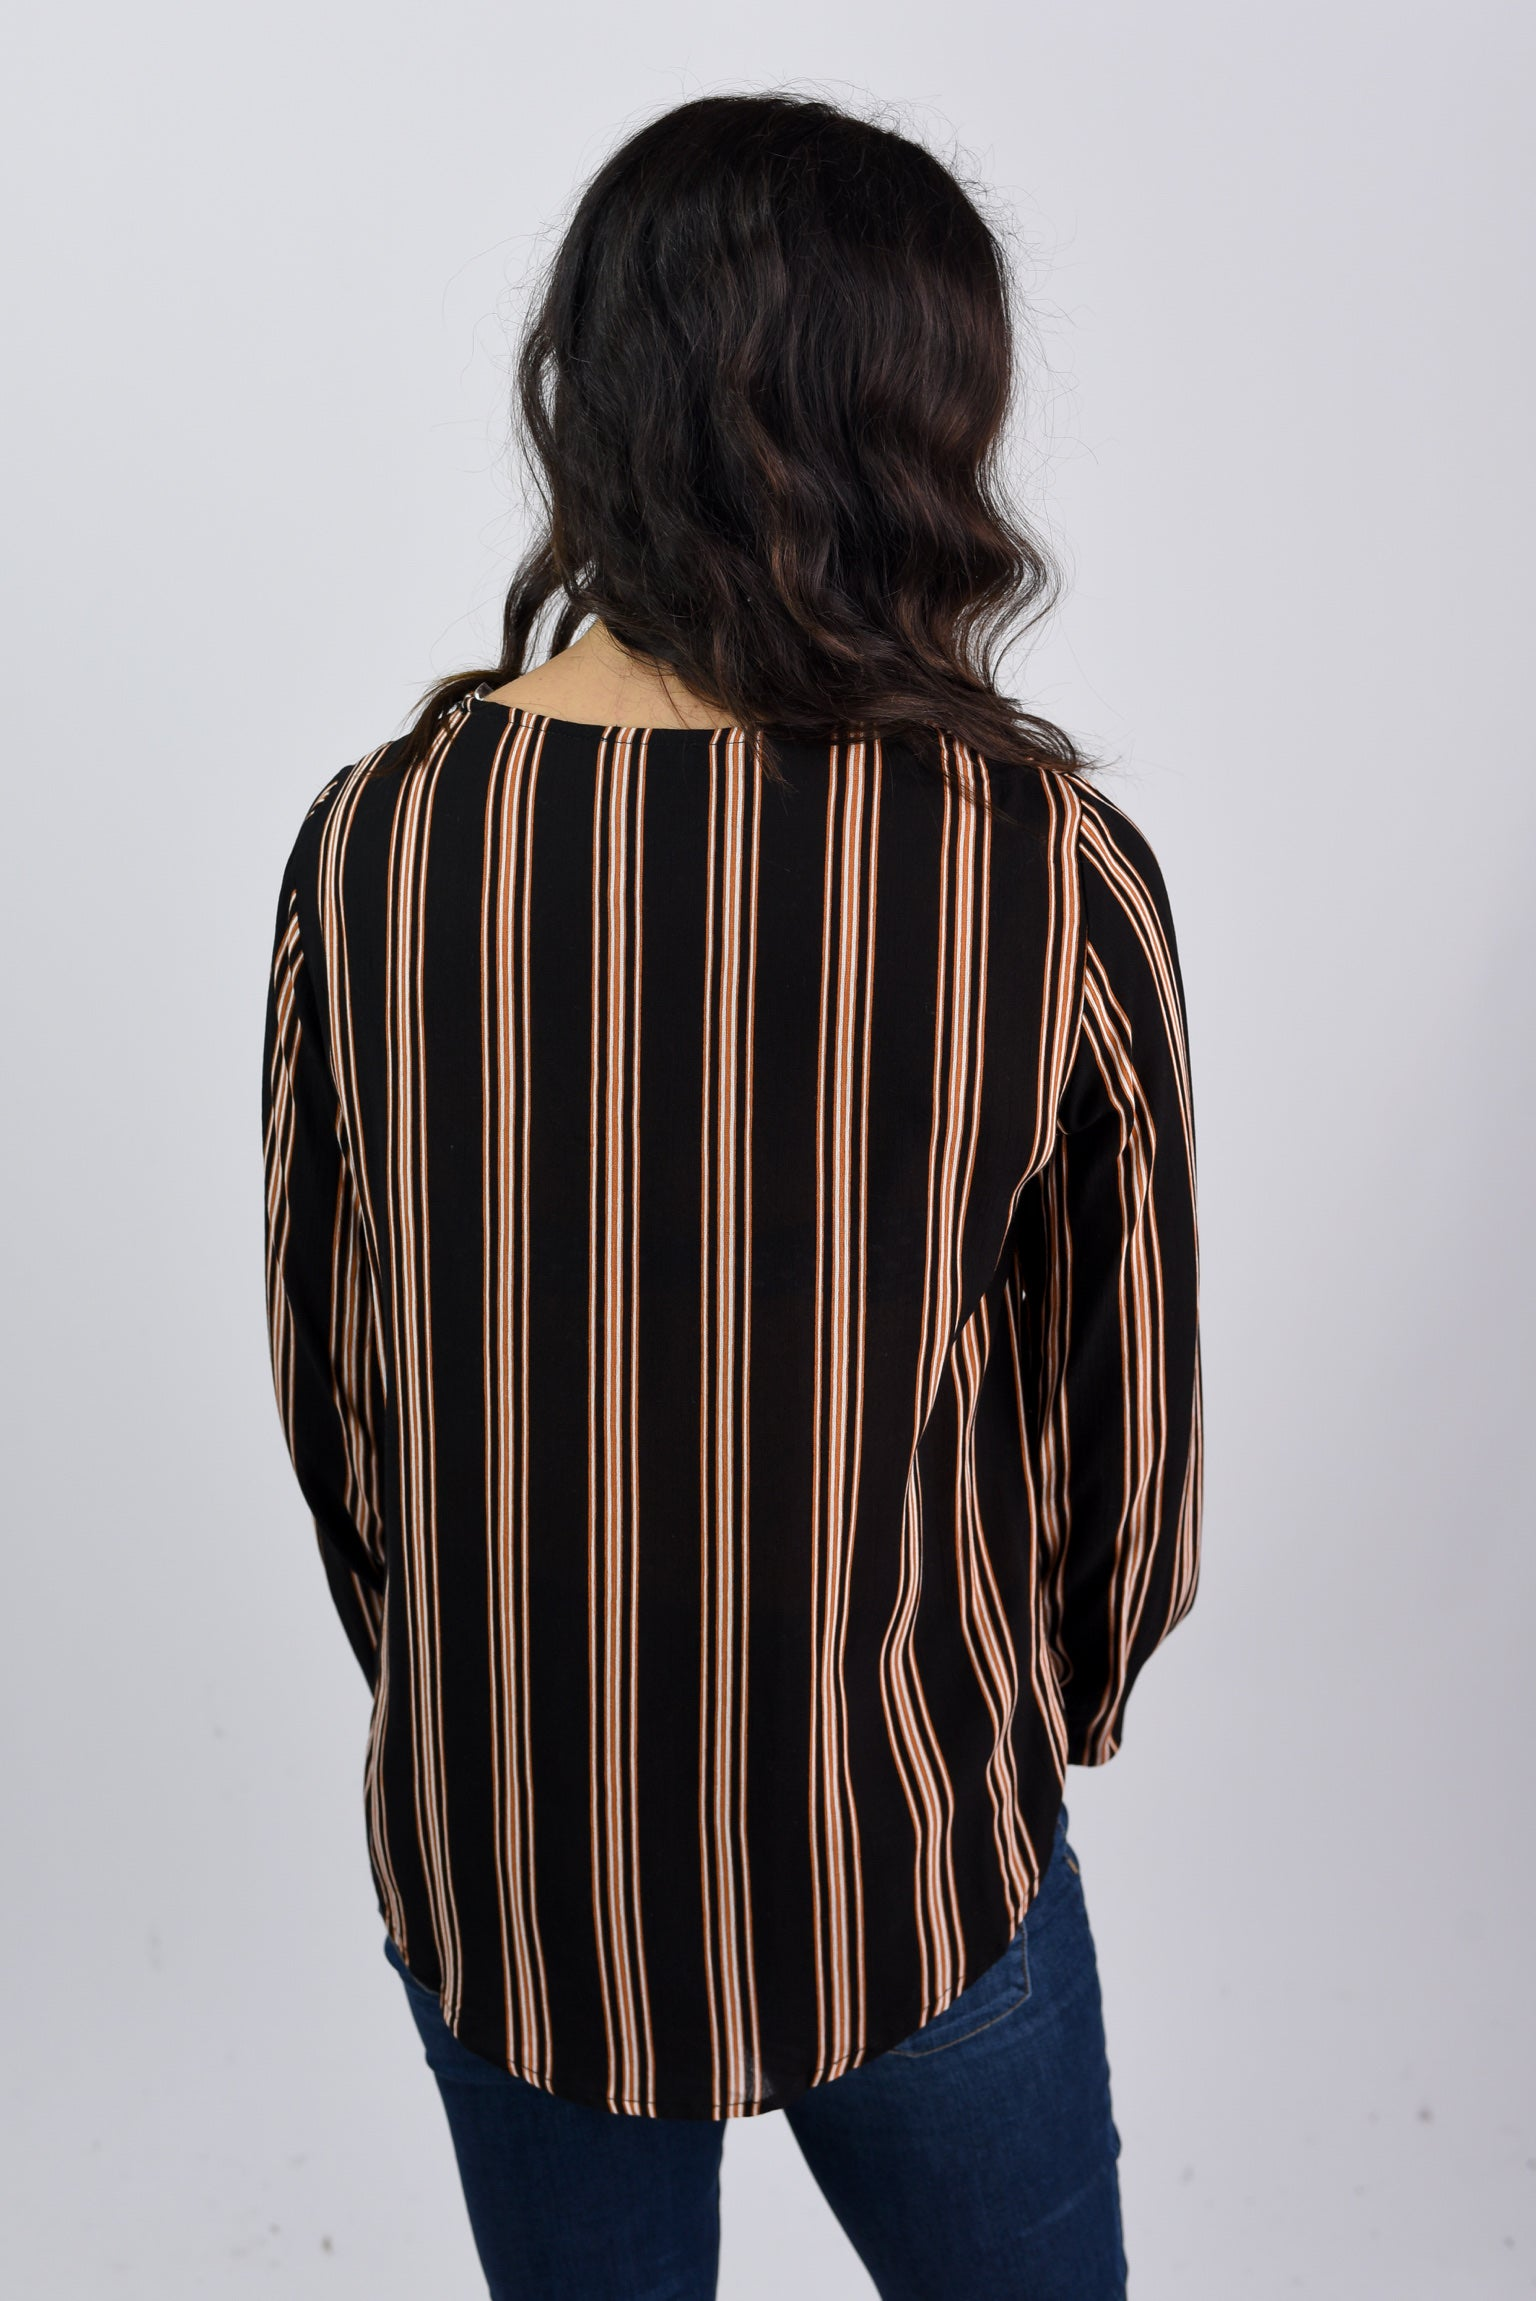 Here By My Side Black Pinstripe Long Sleeve Top